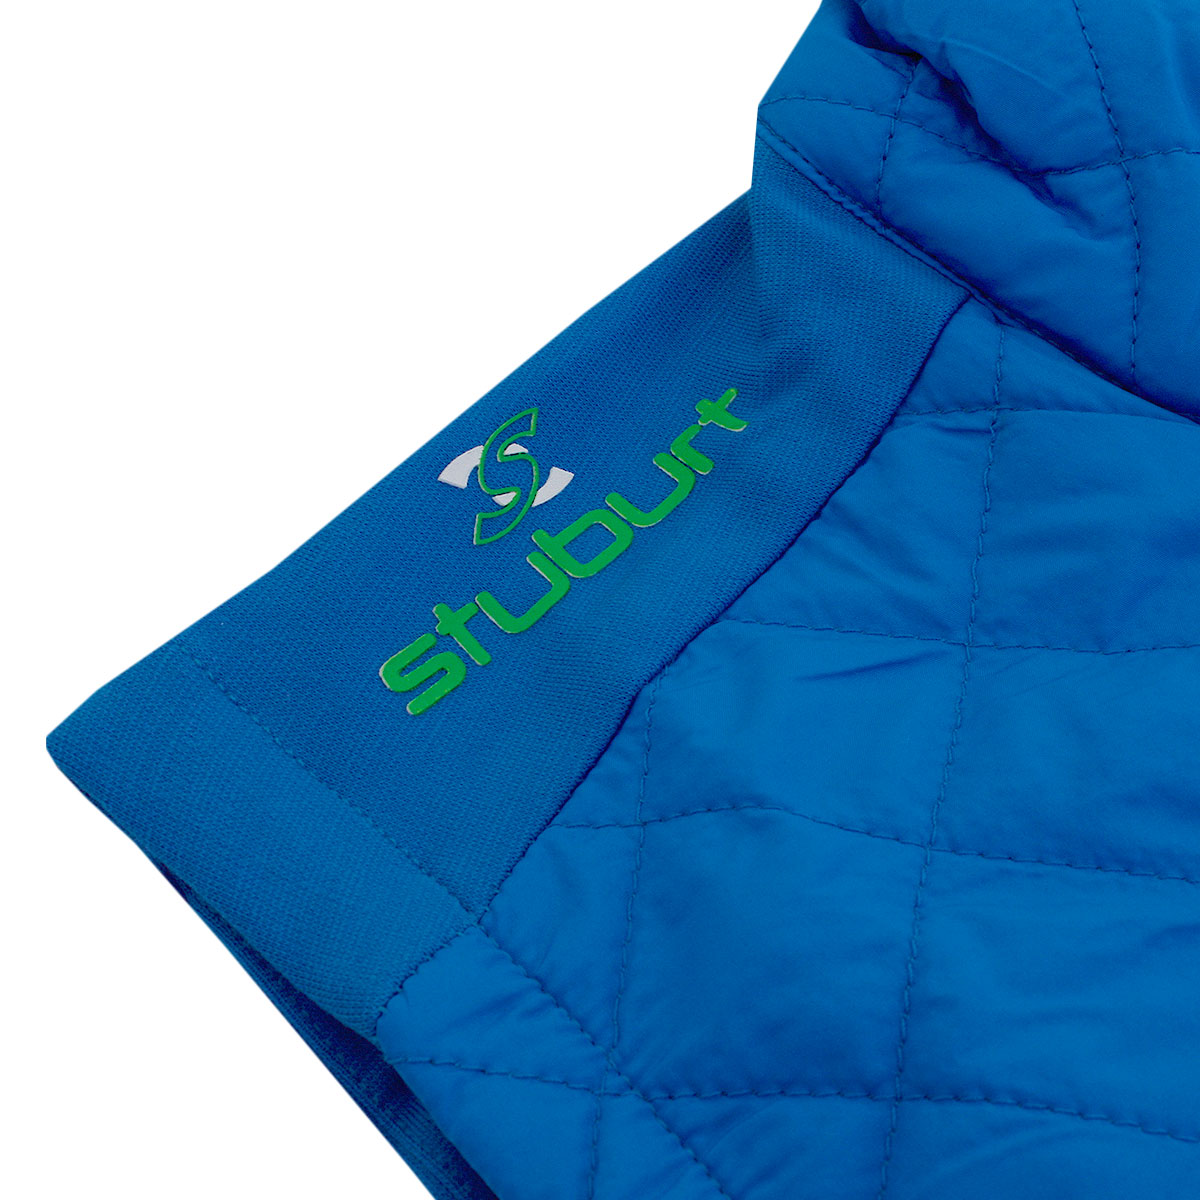 Stuburt-Mens-Endurance-Sport-Full-Zip-Padded-Golf-Gilet-Vest-44-OFF-RRP thumbnail 8